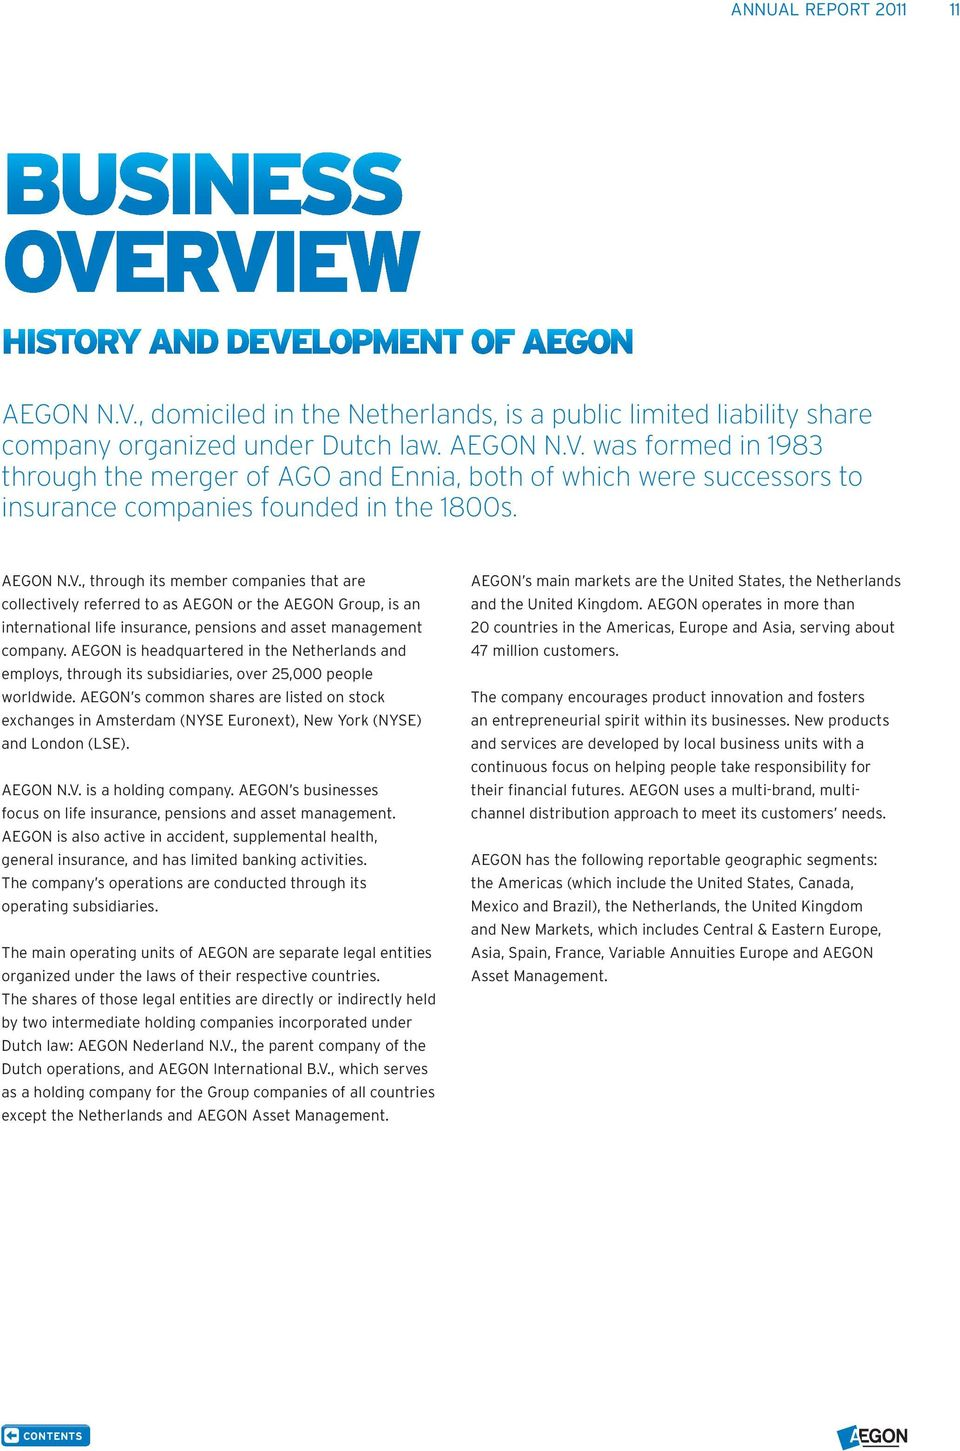 AEGON is headquartered in the Netherlands and employs, through its subsidiaries, over 25,000 people worldwide.